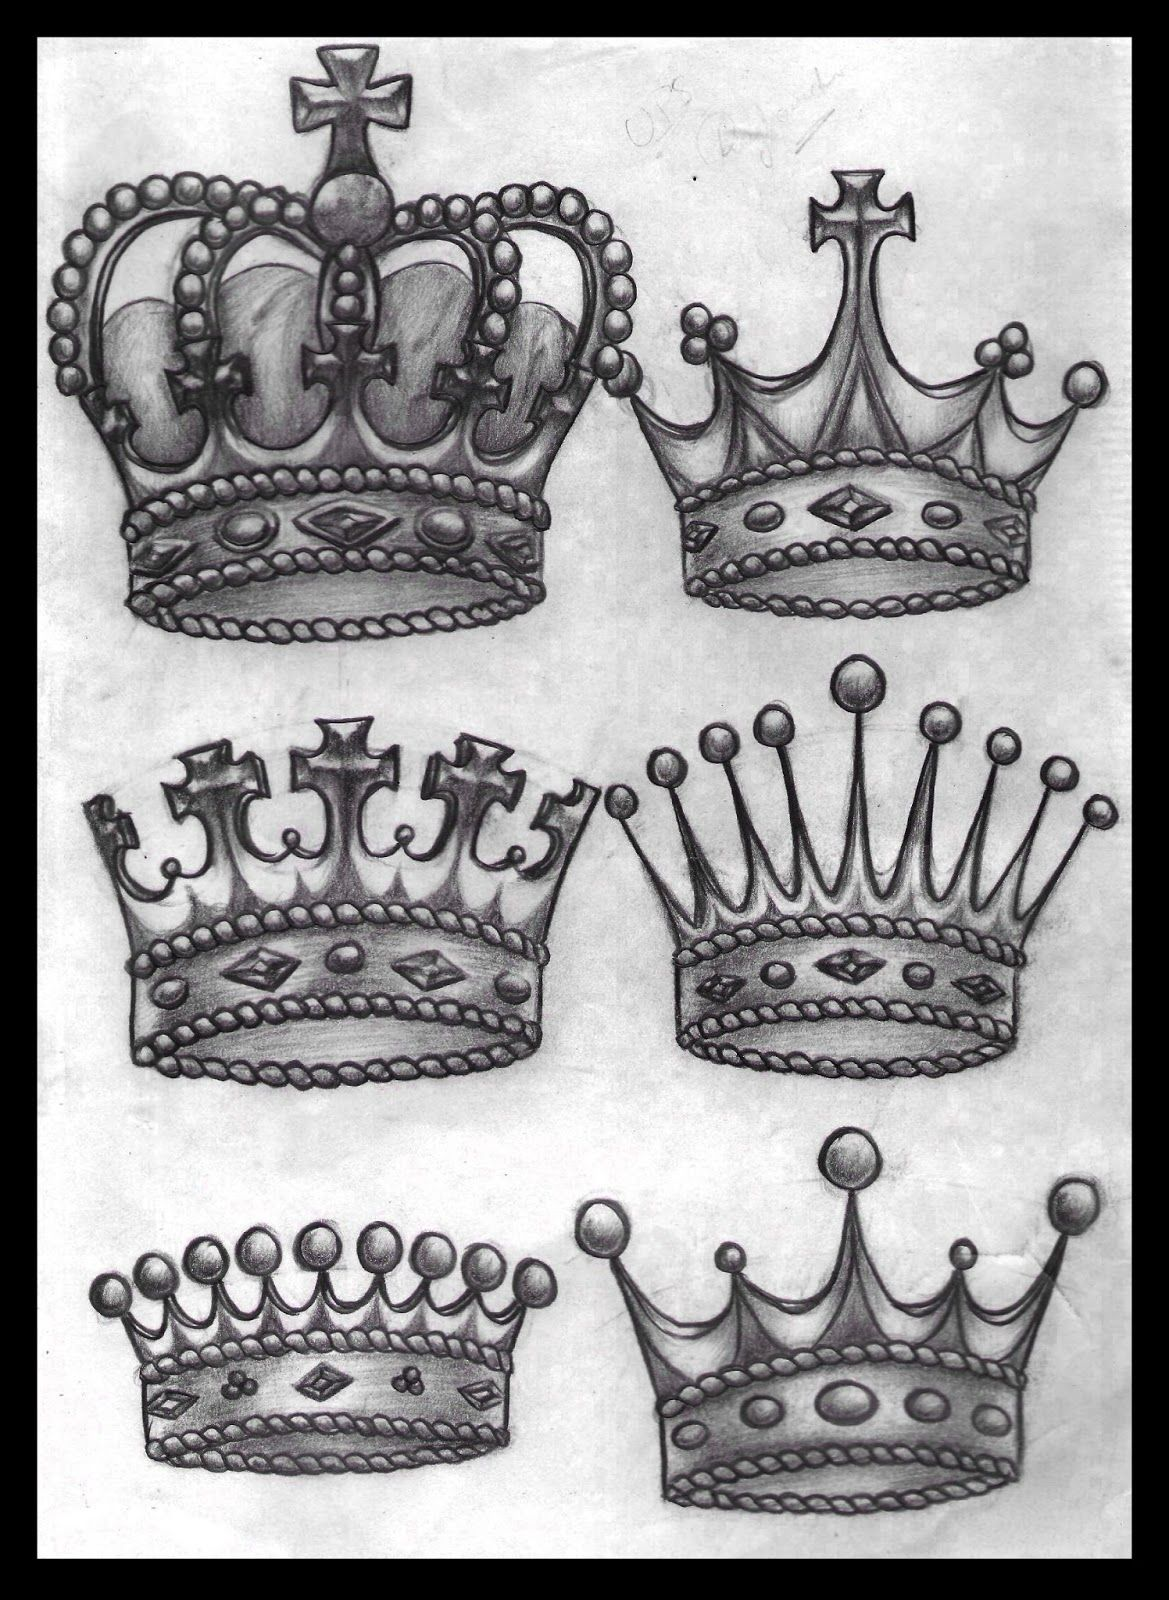 inspirational tattoos killer king crown tattoo tattoos pinterest rh pinterest com king crown tattoo on hand kings crown tattooo